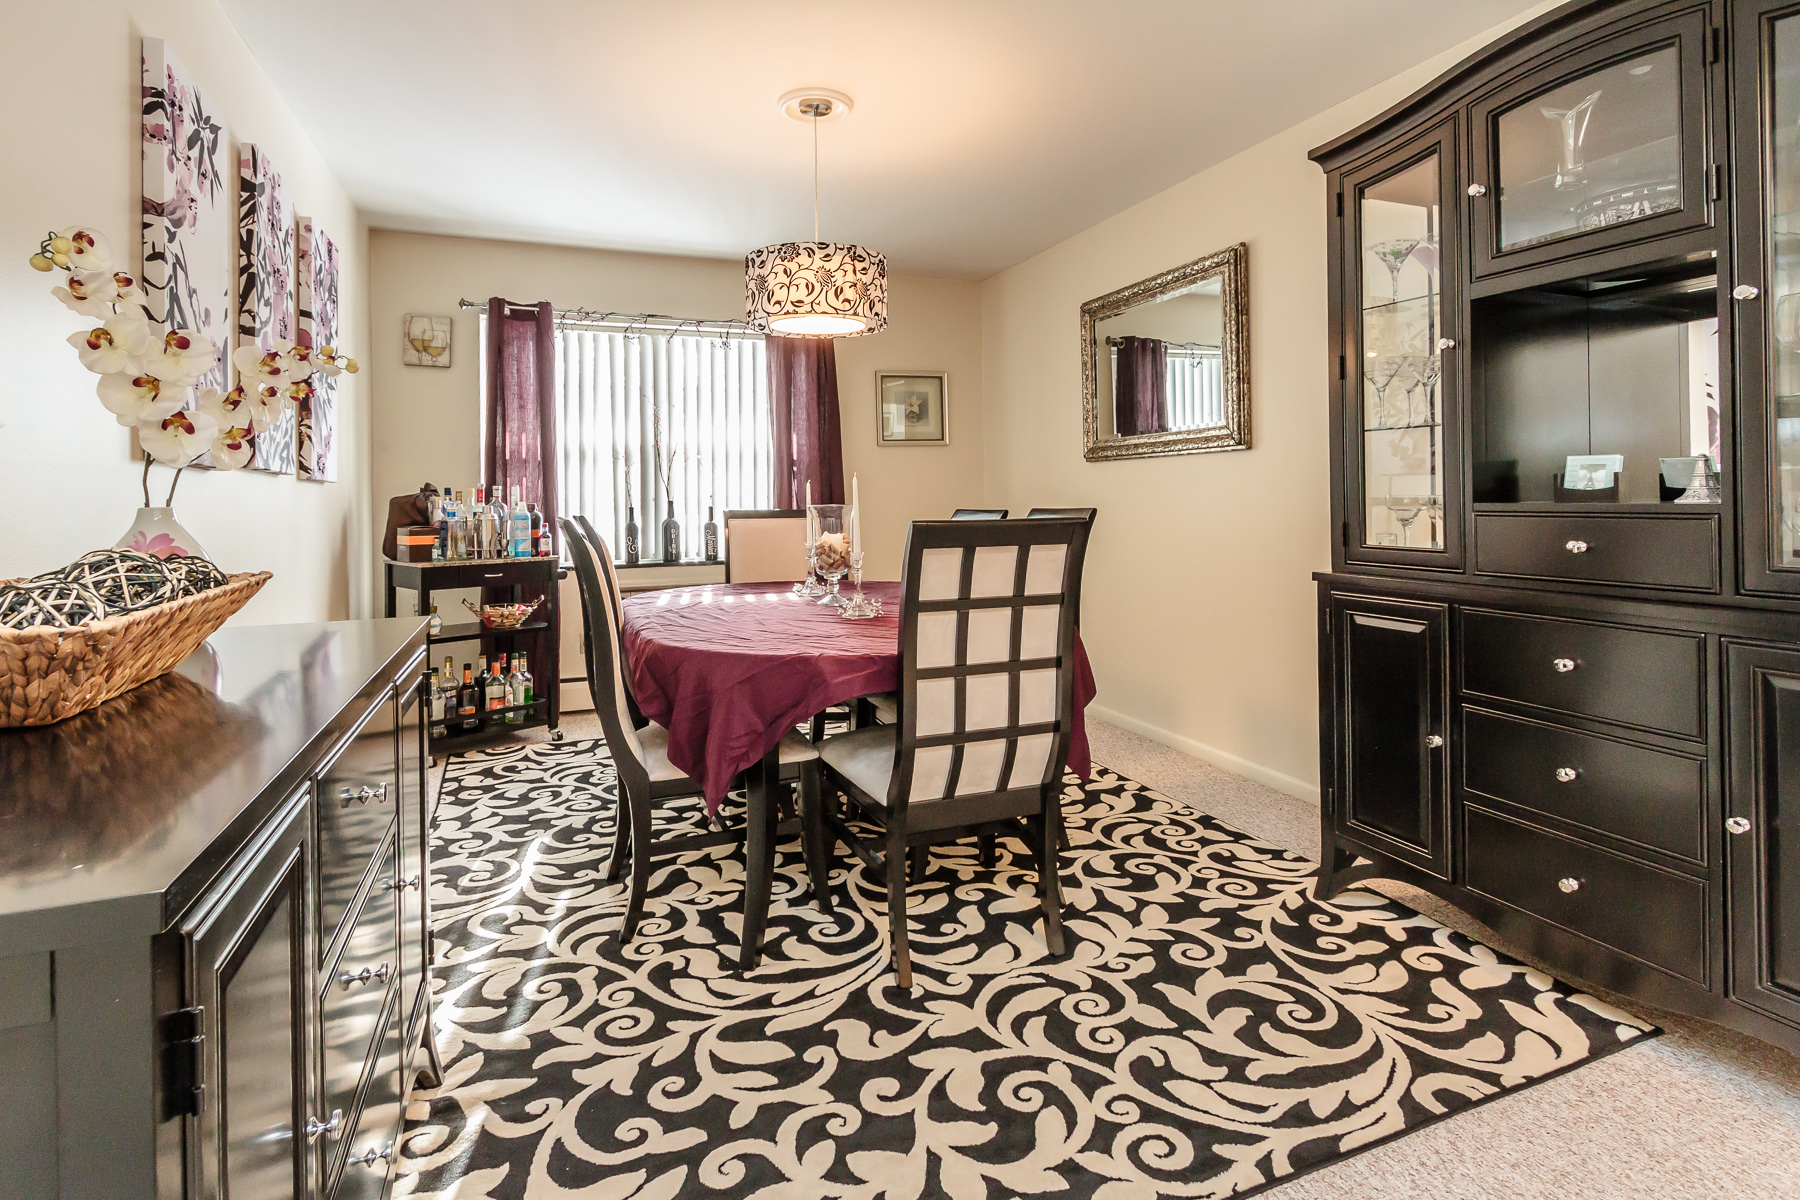 One and two bedroom rochester apartments landing heights ny for 2 bedroom apartments rochester ny